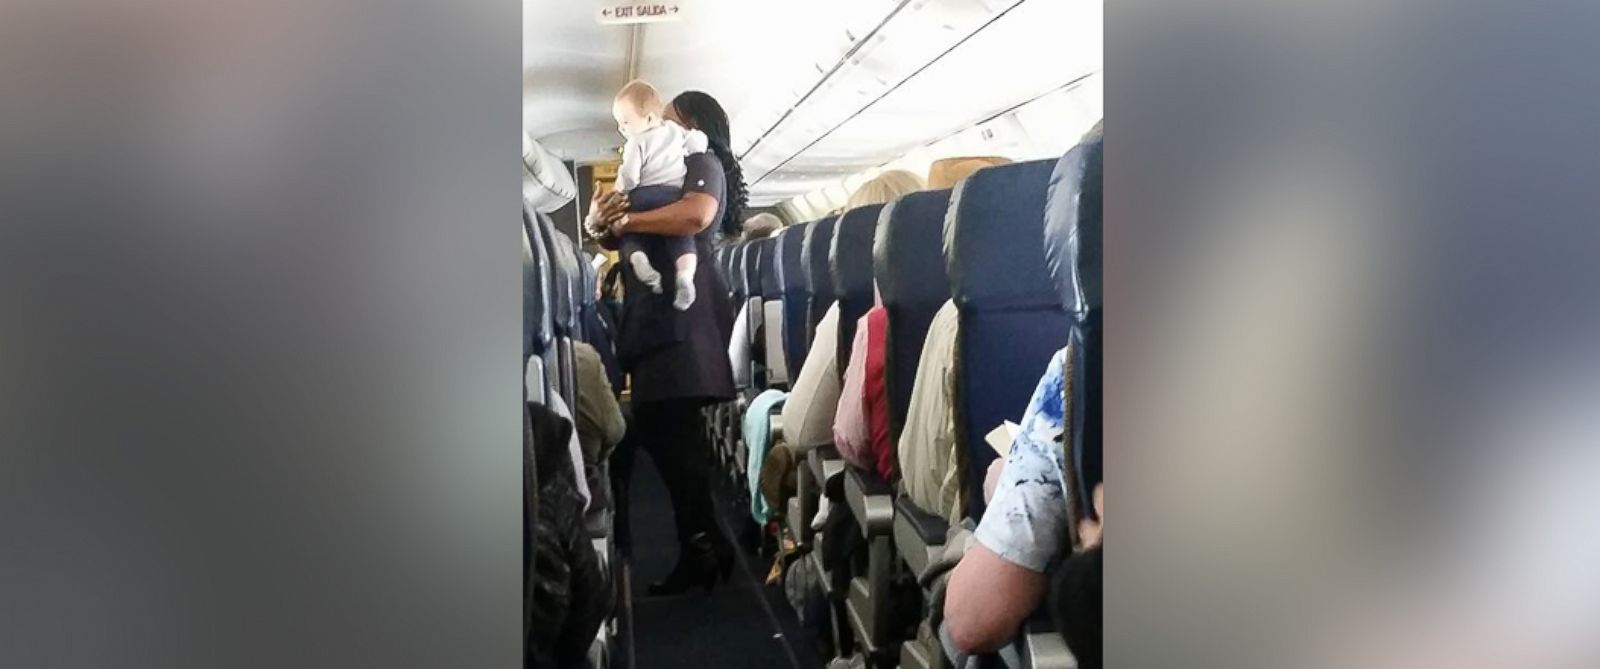 PHOTO:Heather Gooch shared a photo on Facebook of her 9-month-old son, Aiden, being held by a Southwest Airlines flight attendant.